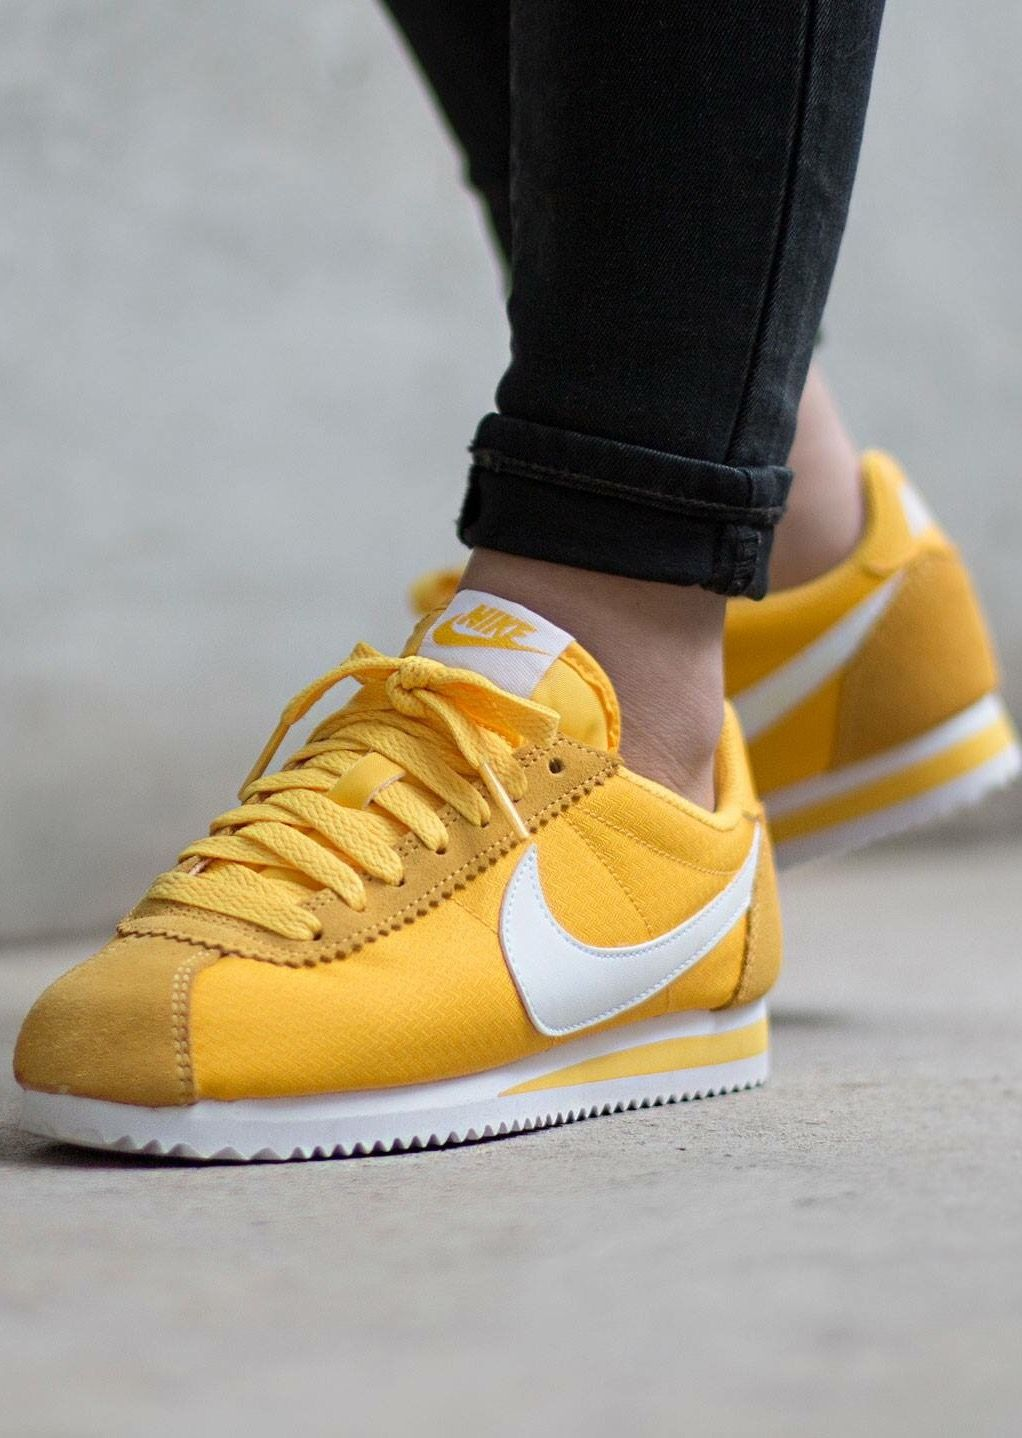 new concept 1315a bafb3 Nike Cortez Nylon  Yellow